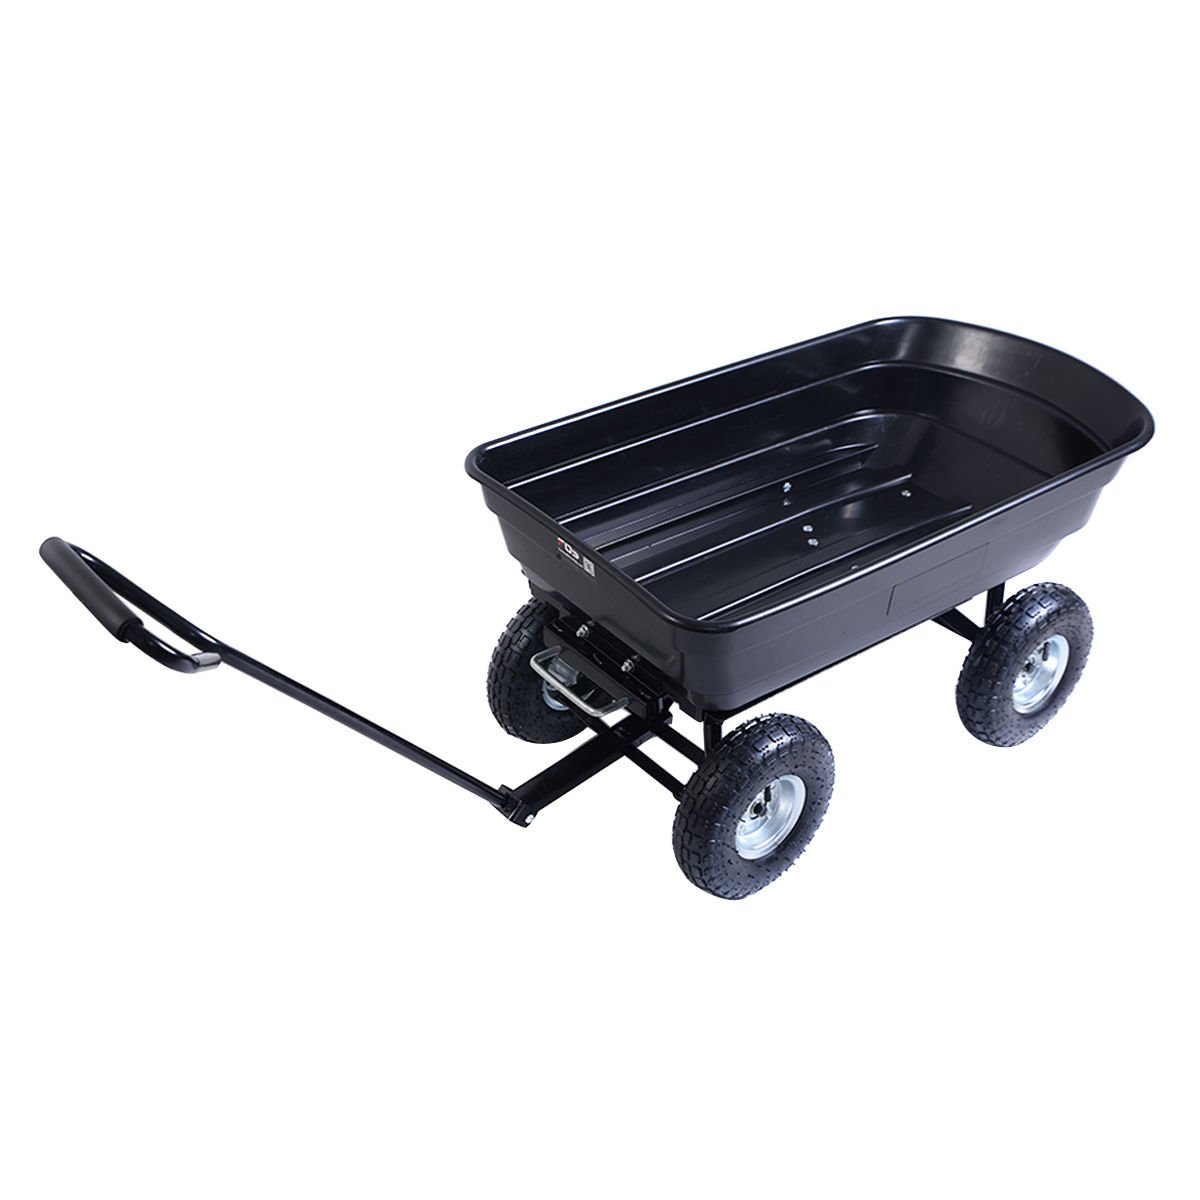 650 LB garden dump cart dumper wagon carrier wheel barrow air tires heavy duty for grandkids to play with and can also haul gardening tools or supplies in the yard.